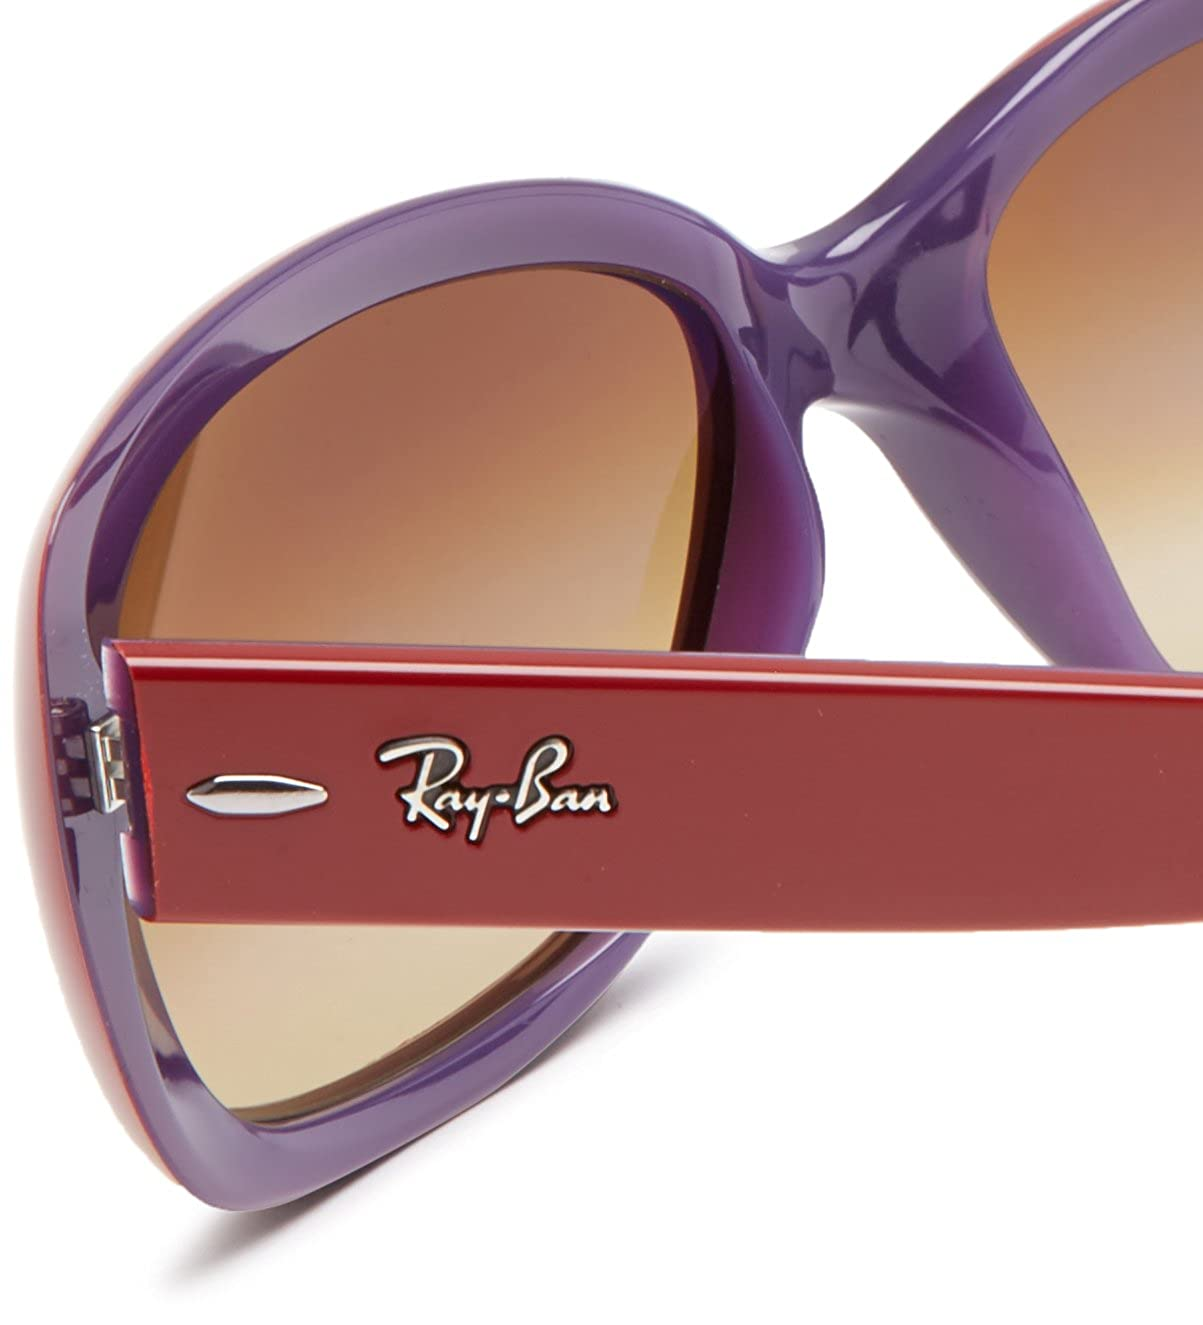 c9a38af1db Ray-Ban 4101 603885 Burgundy 4101 Jackie Ohh Square Sunglasses Lens  Category 3  Amazon.co.uk  Clothing